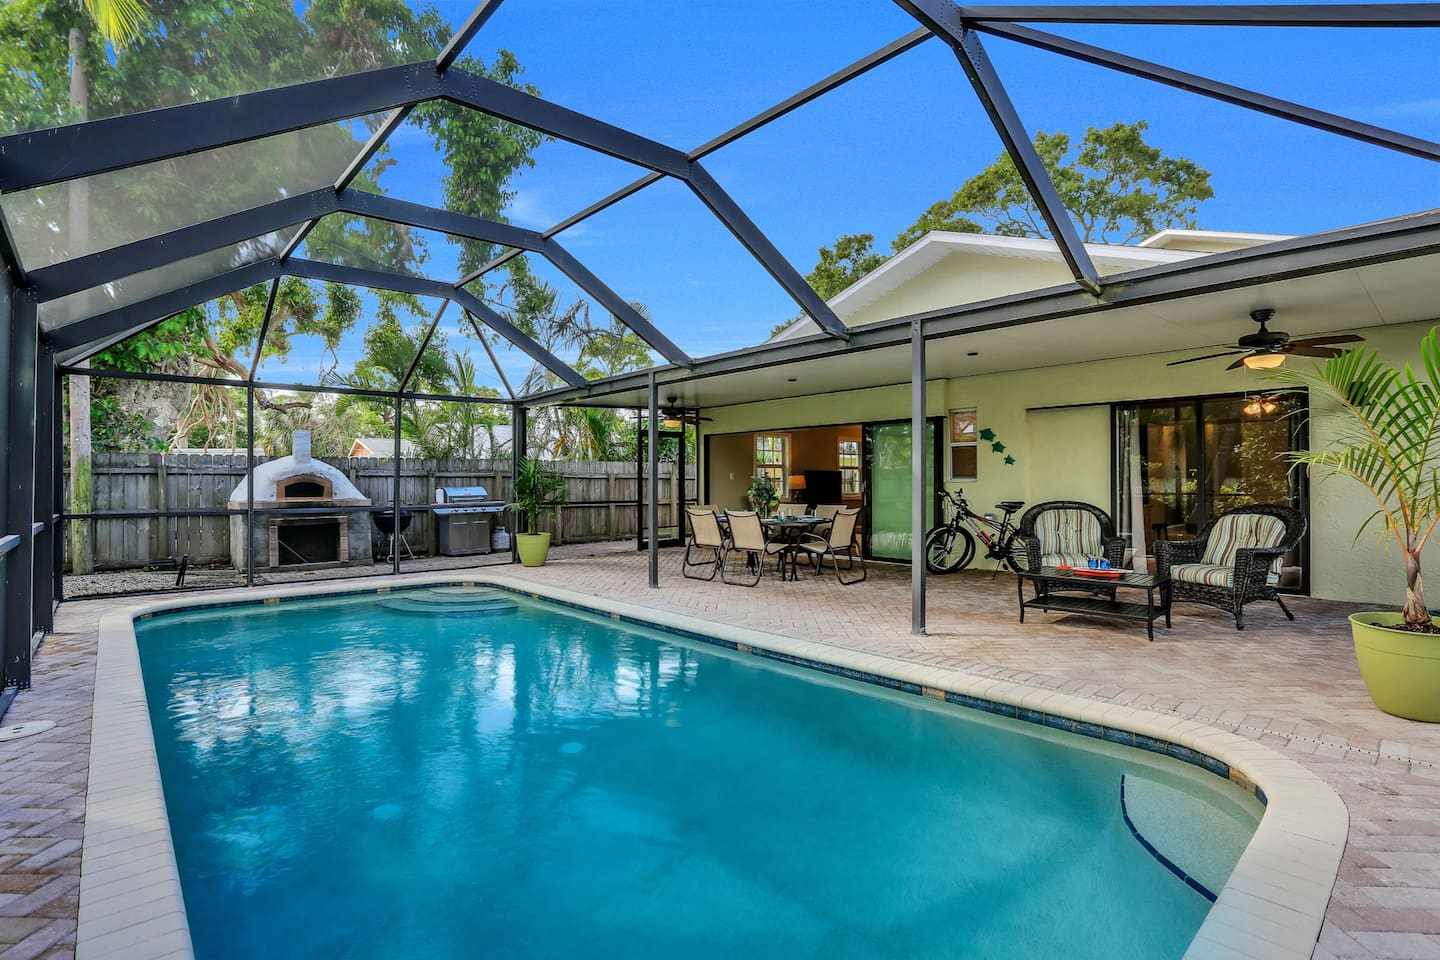 Screened pool, covered lanai and dining area, brick pizza oven, charcoal grill and gas grill